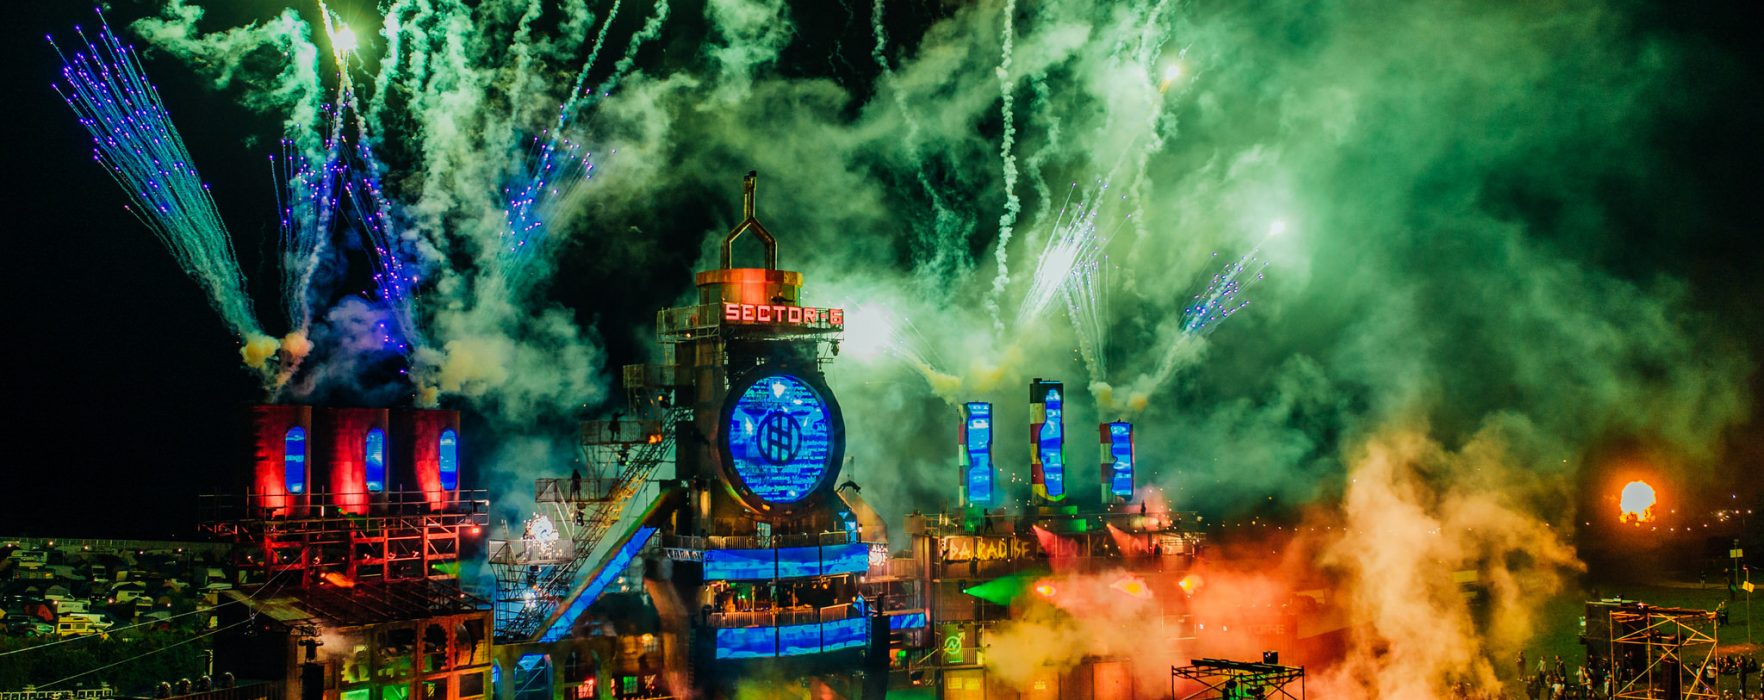 Boomtown Fair: The Most Magical Four Days Of Next Level Craziness